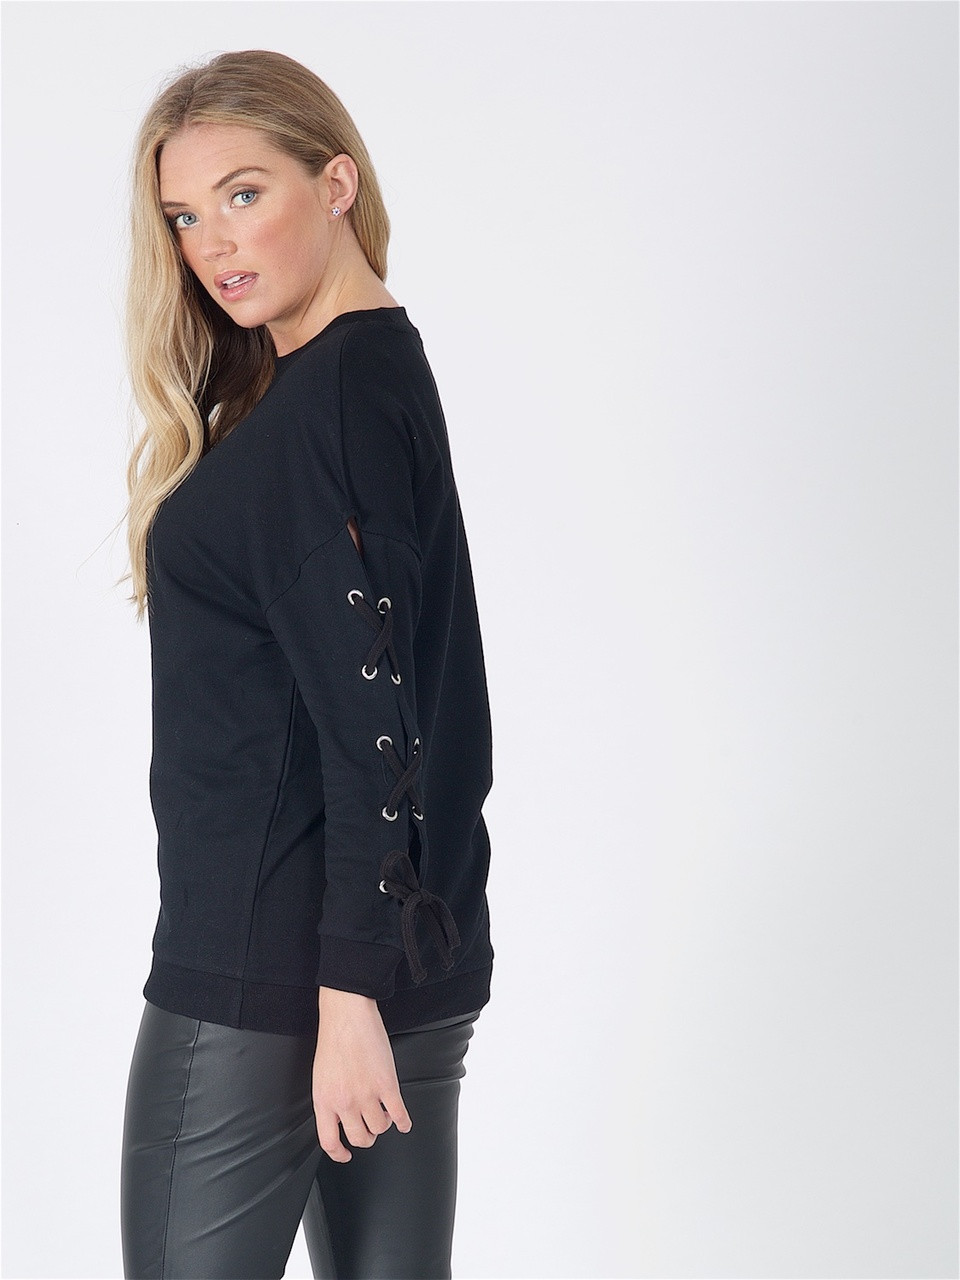 Black Lace Up Sleeve Sweat